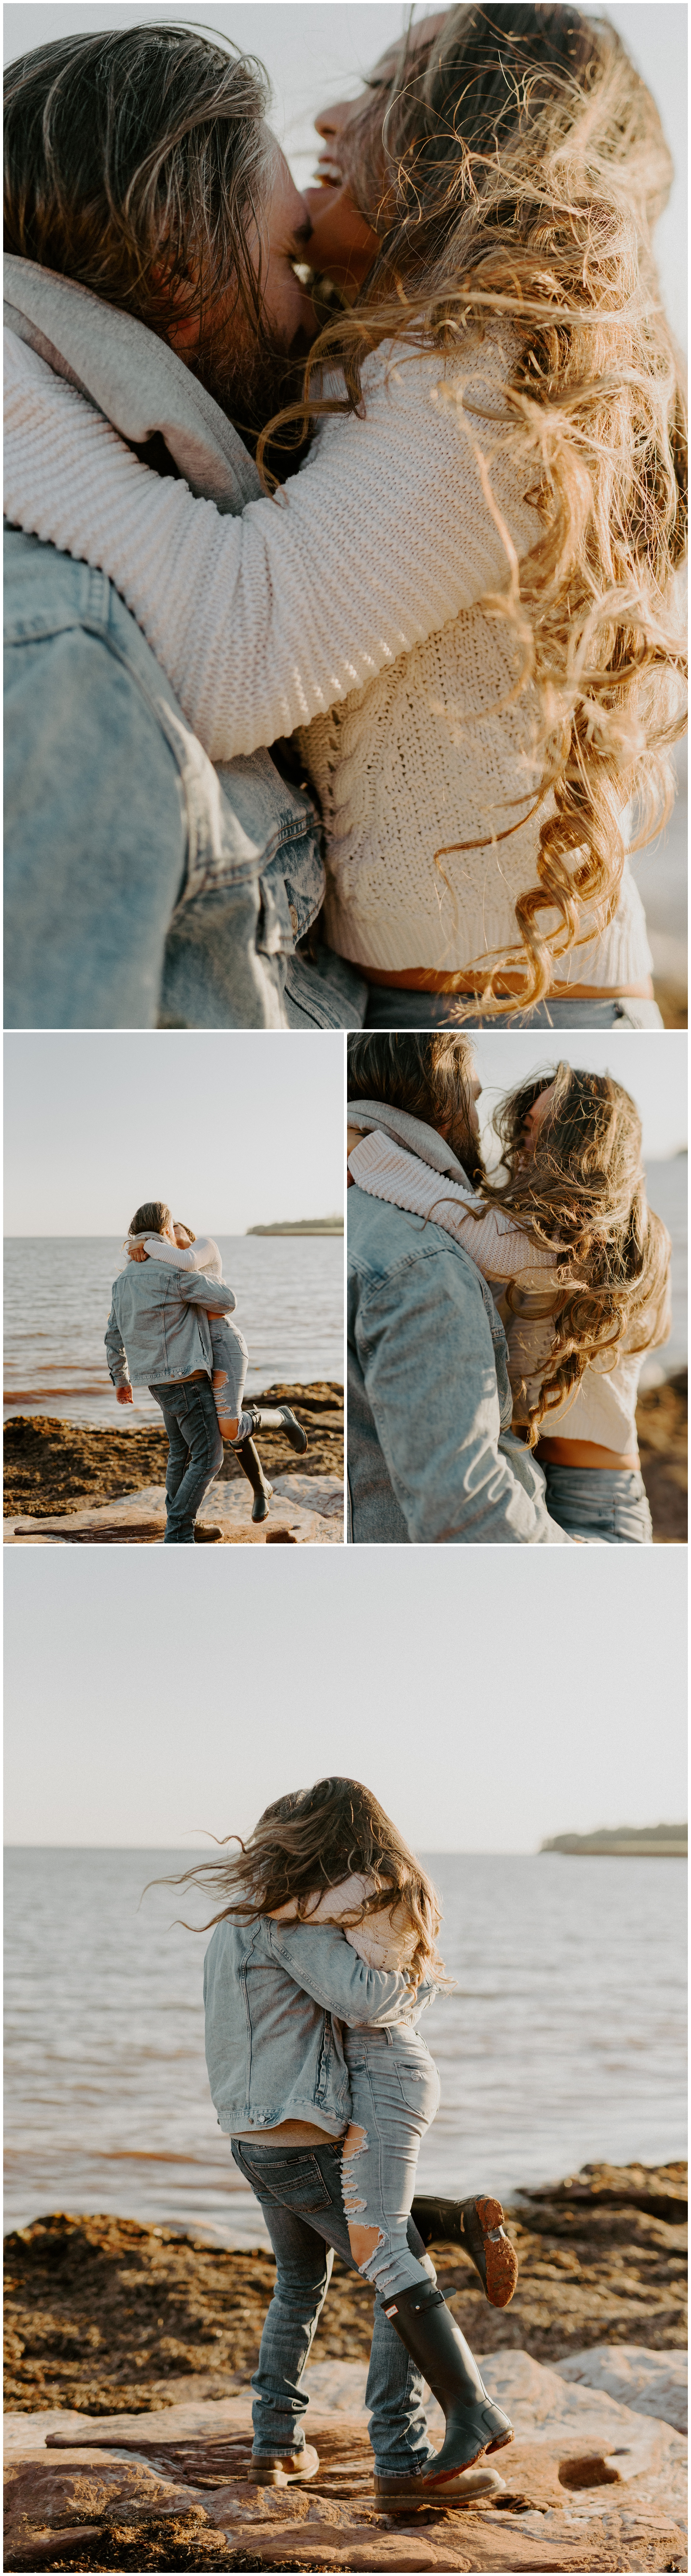 Red Sand Beach Engagements On Prince Edward Island at Sunset | Jessica Heron Images_0002.jpg